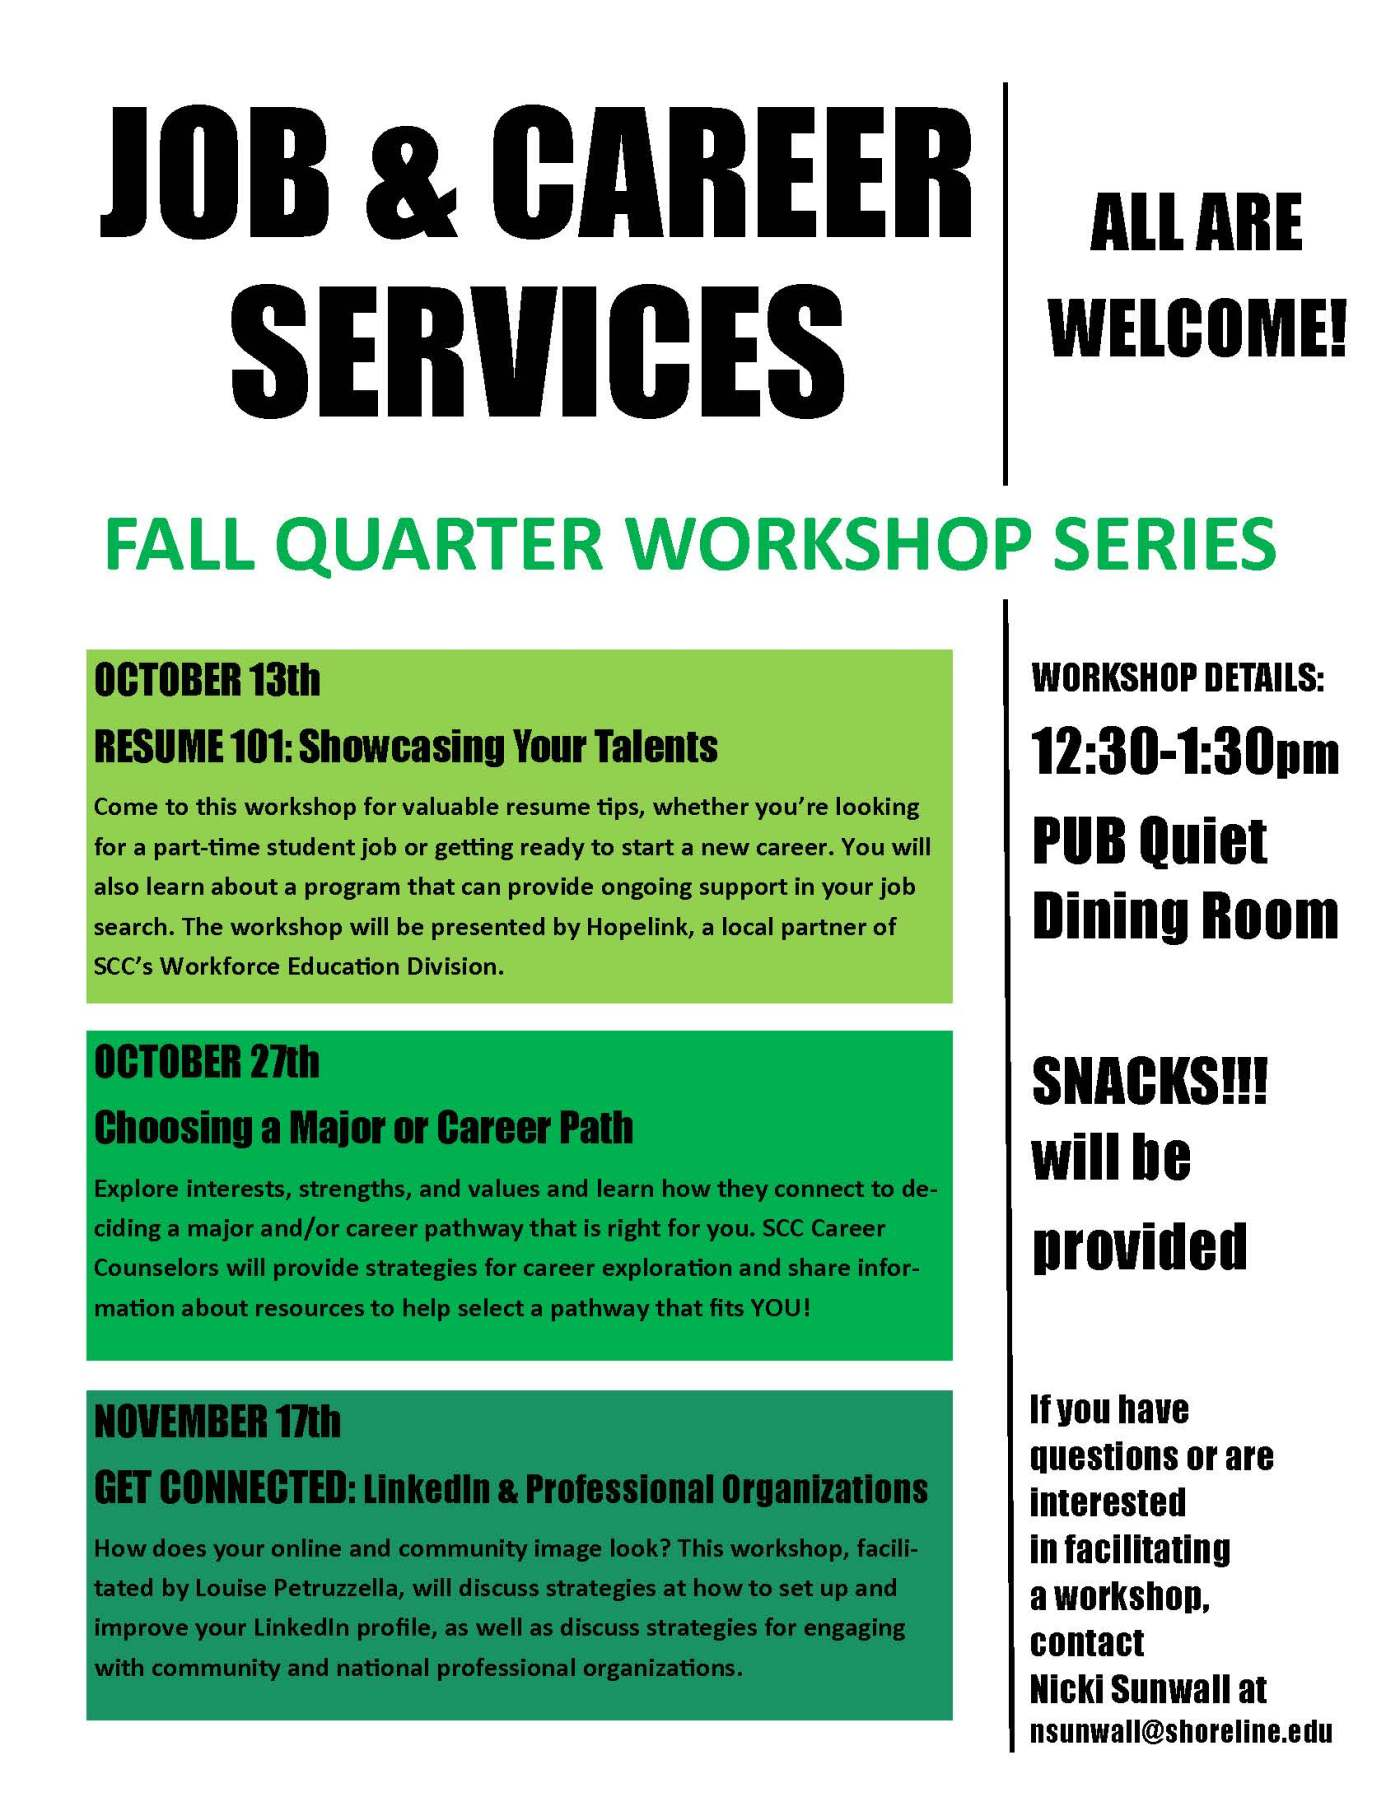 reminder tell your students choosing a major or career path reminder tell your students choosing a major or career path workshop tues oct 27 day at a glance